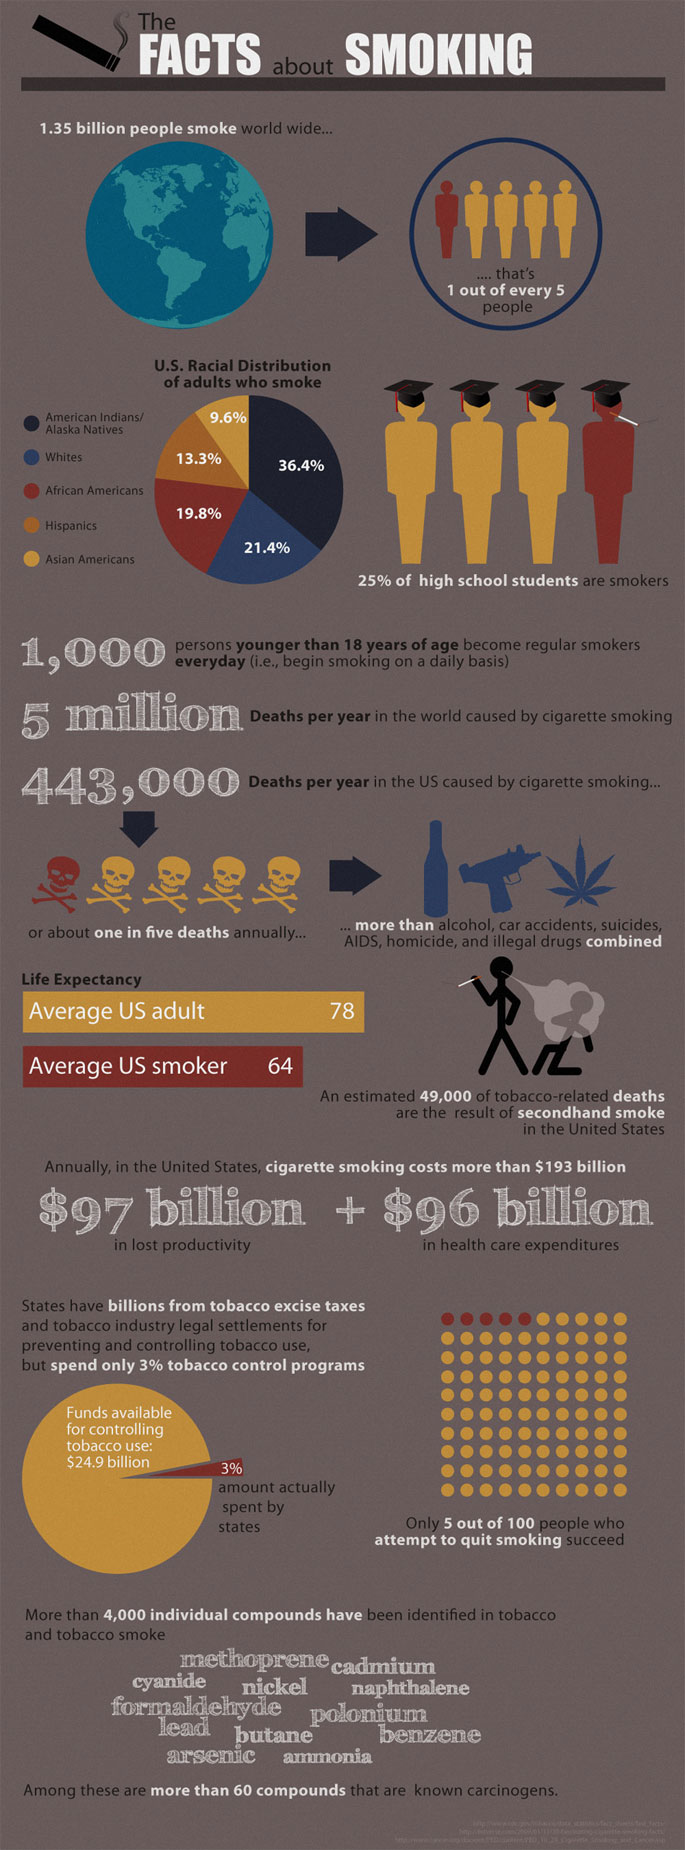 2010 Smoking Statistics - Cigarette Ingredients